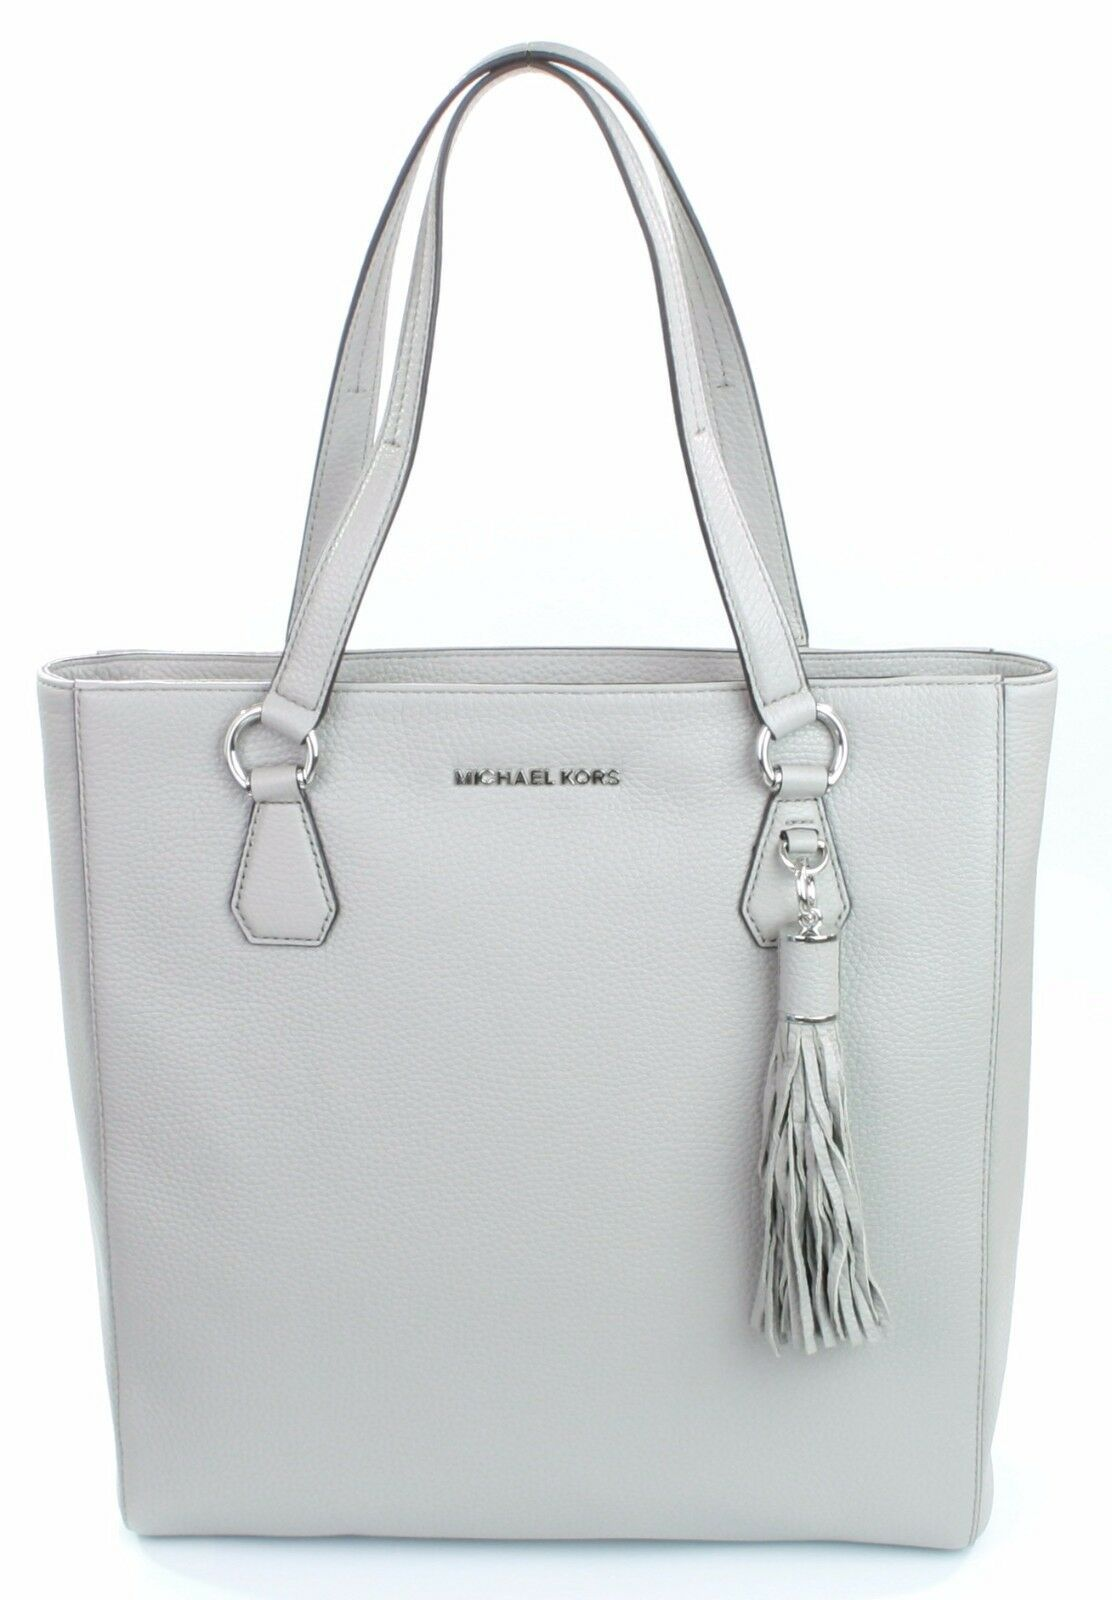 Primary image for Michael Kors Bedford Leather Pearl Grey Shopper Tote Bag Large Handbag